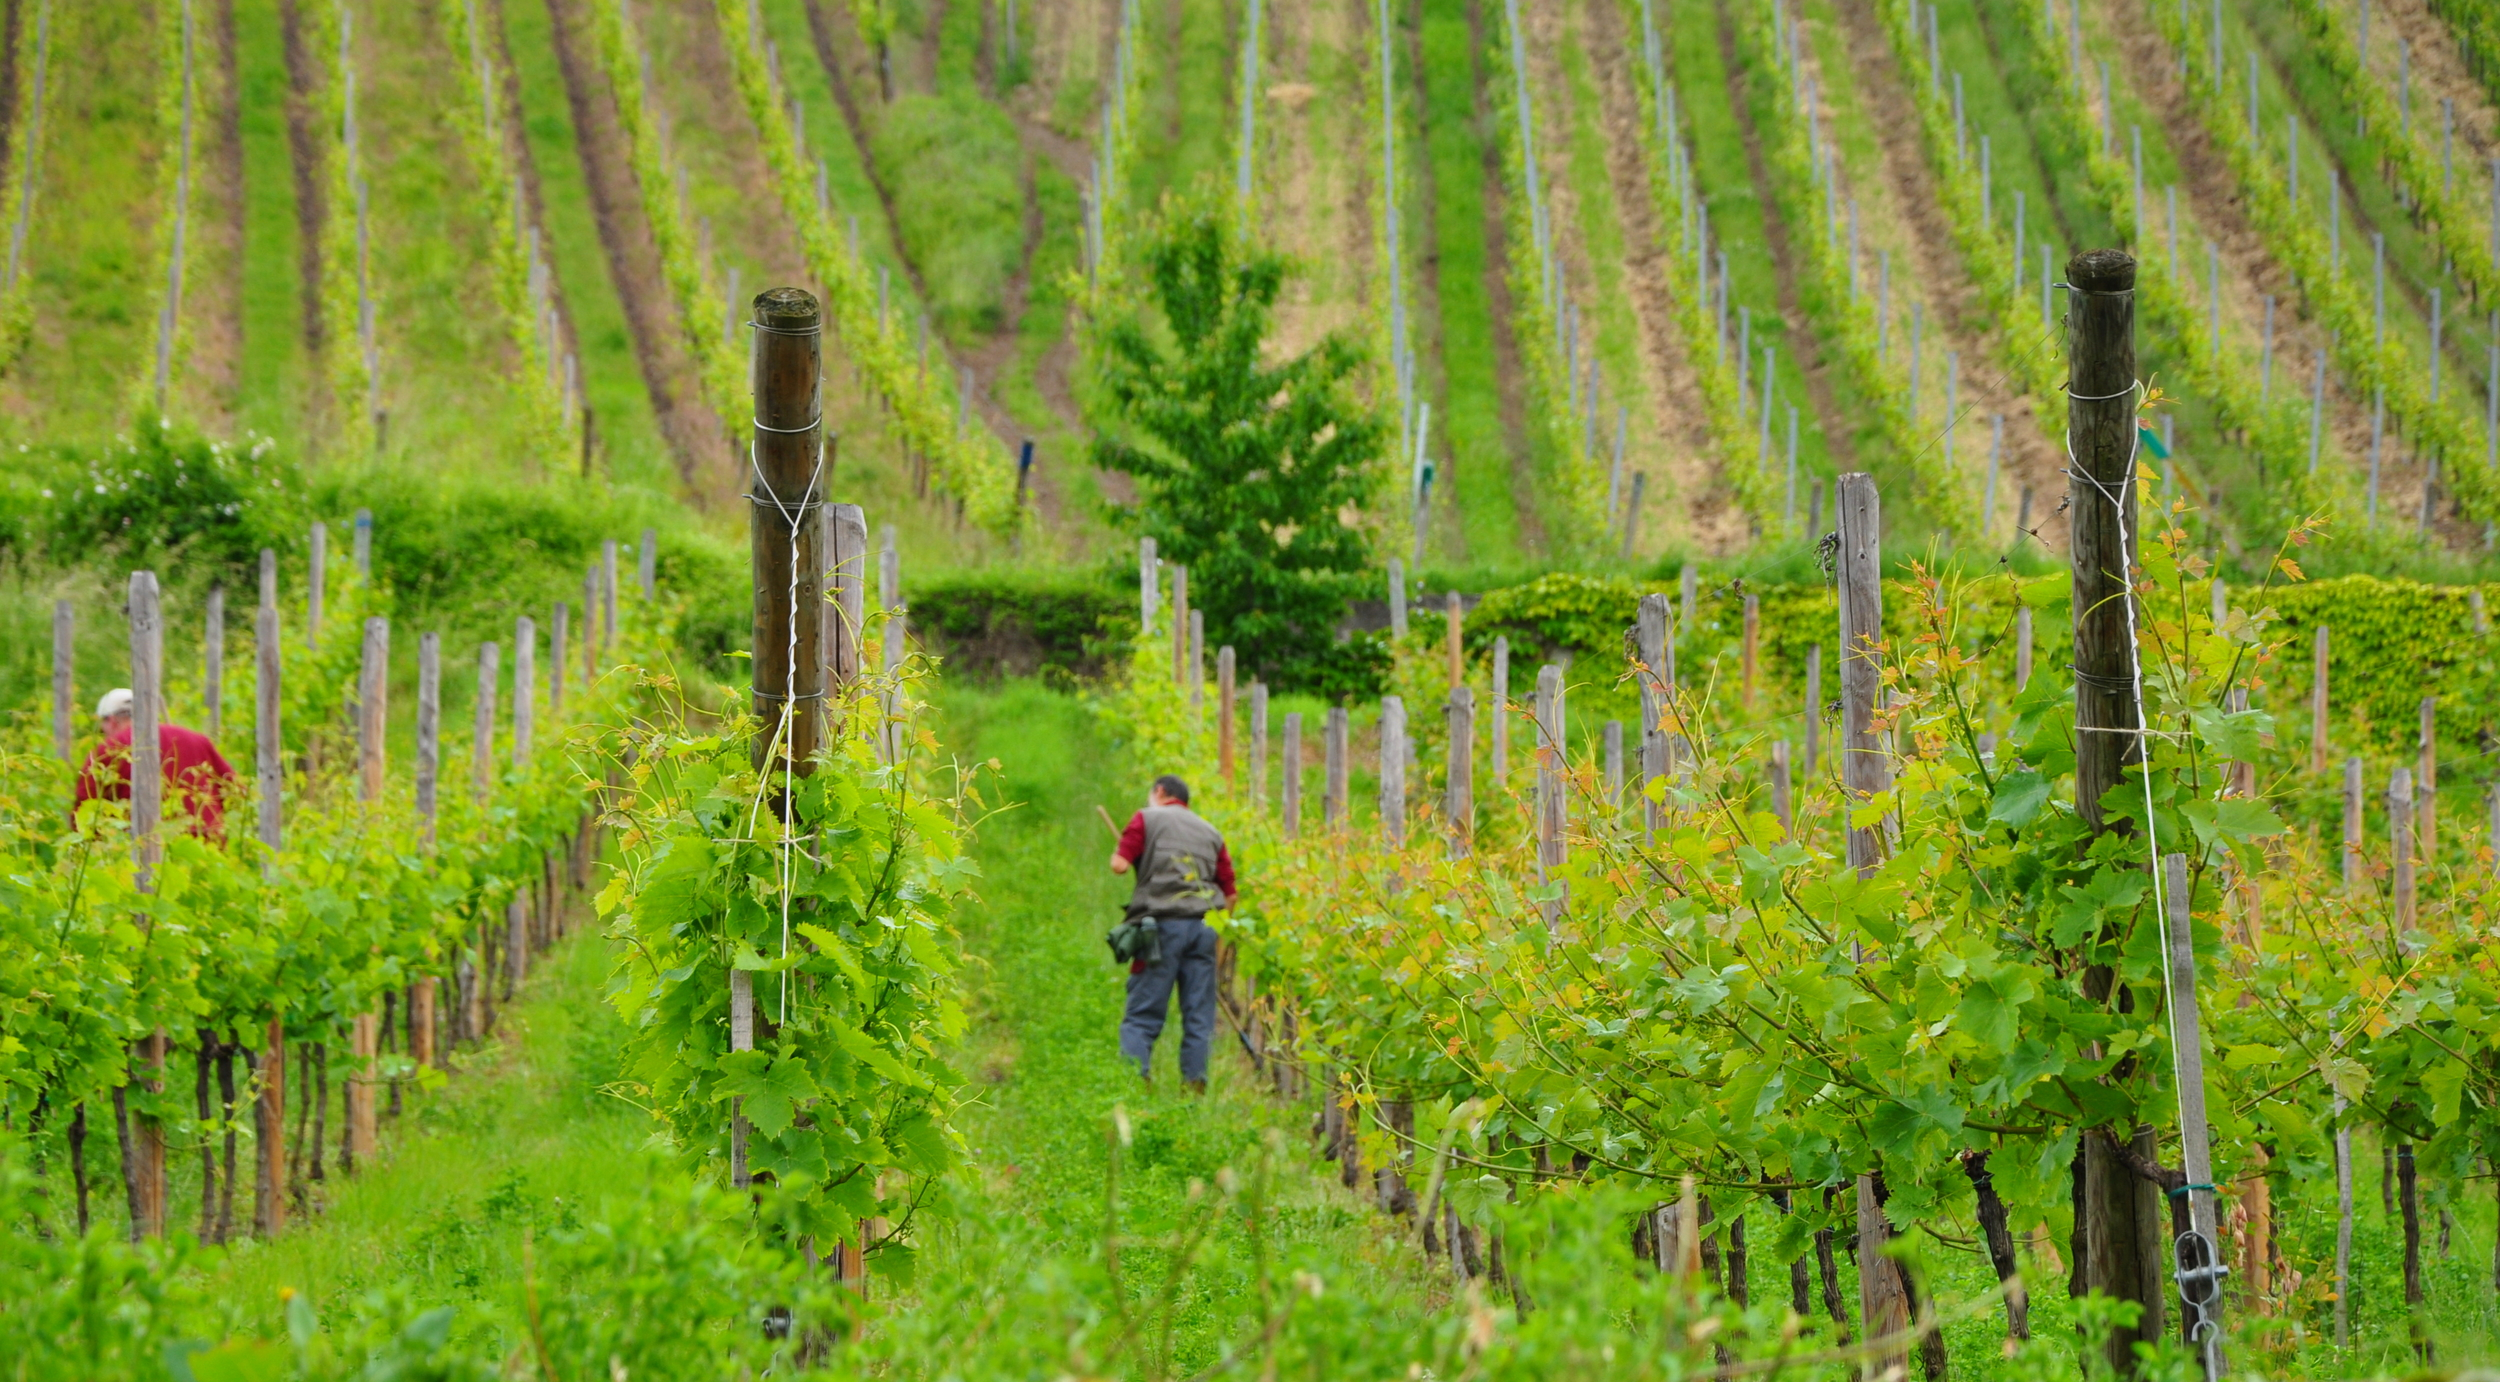 Vineyard in Riquewihr  ©Copyright 2015 Bridget Barnes